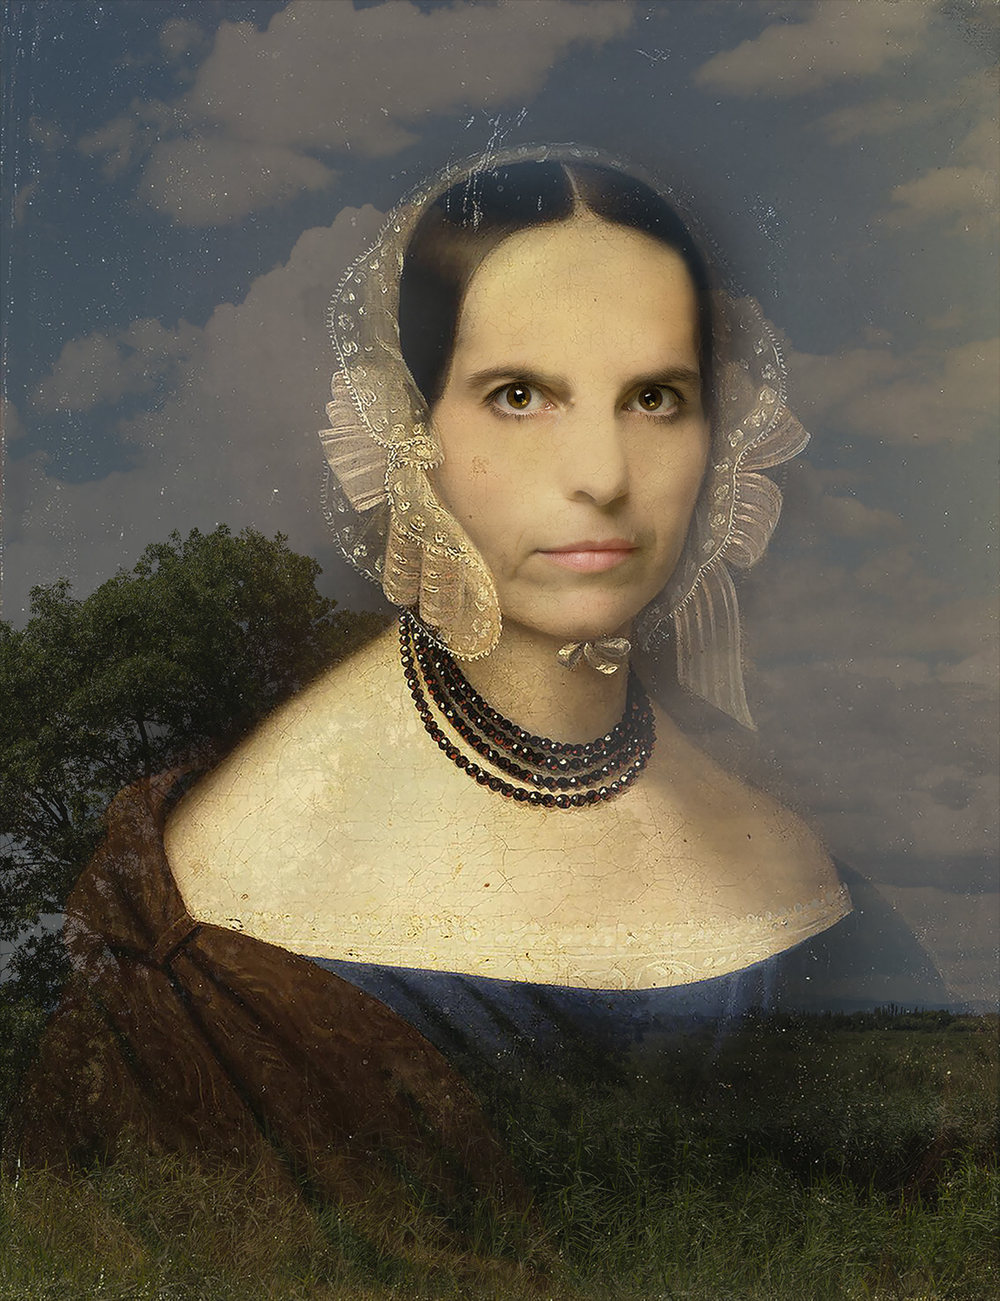 Myself as Woman with a Garnet Necklace (1843-2015) -  Original by Johan Huber Rudolf